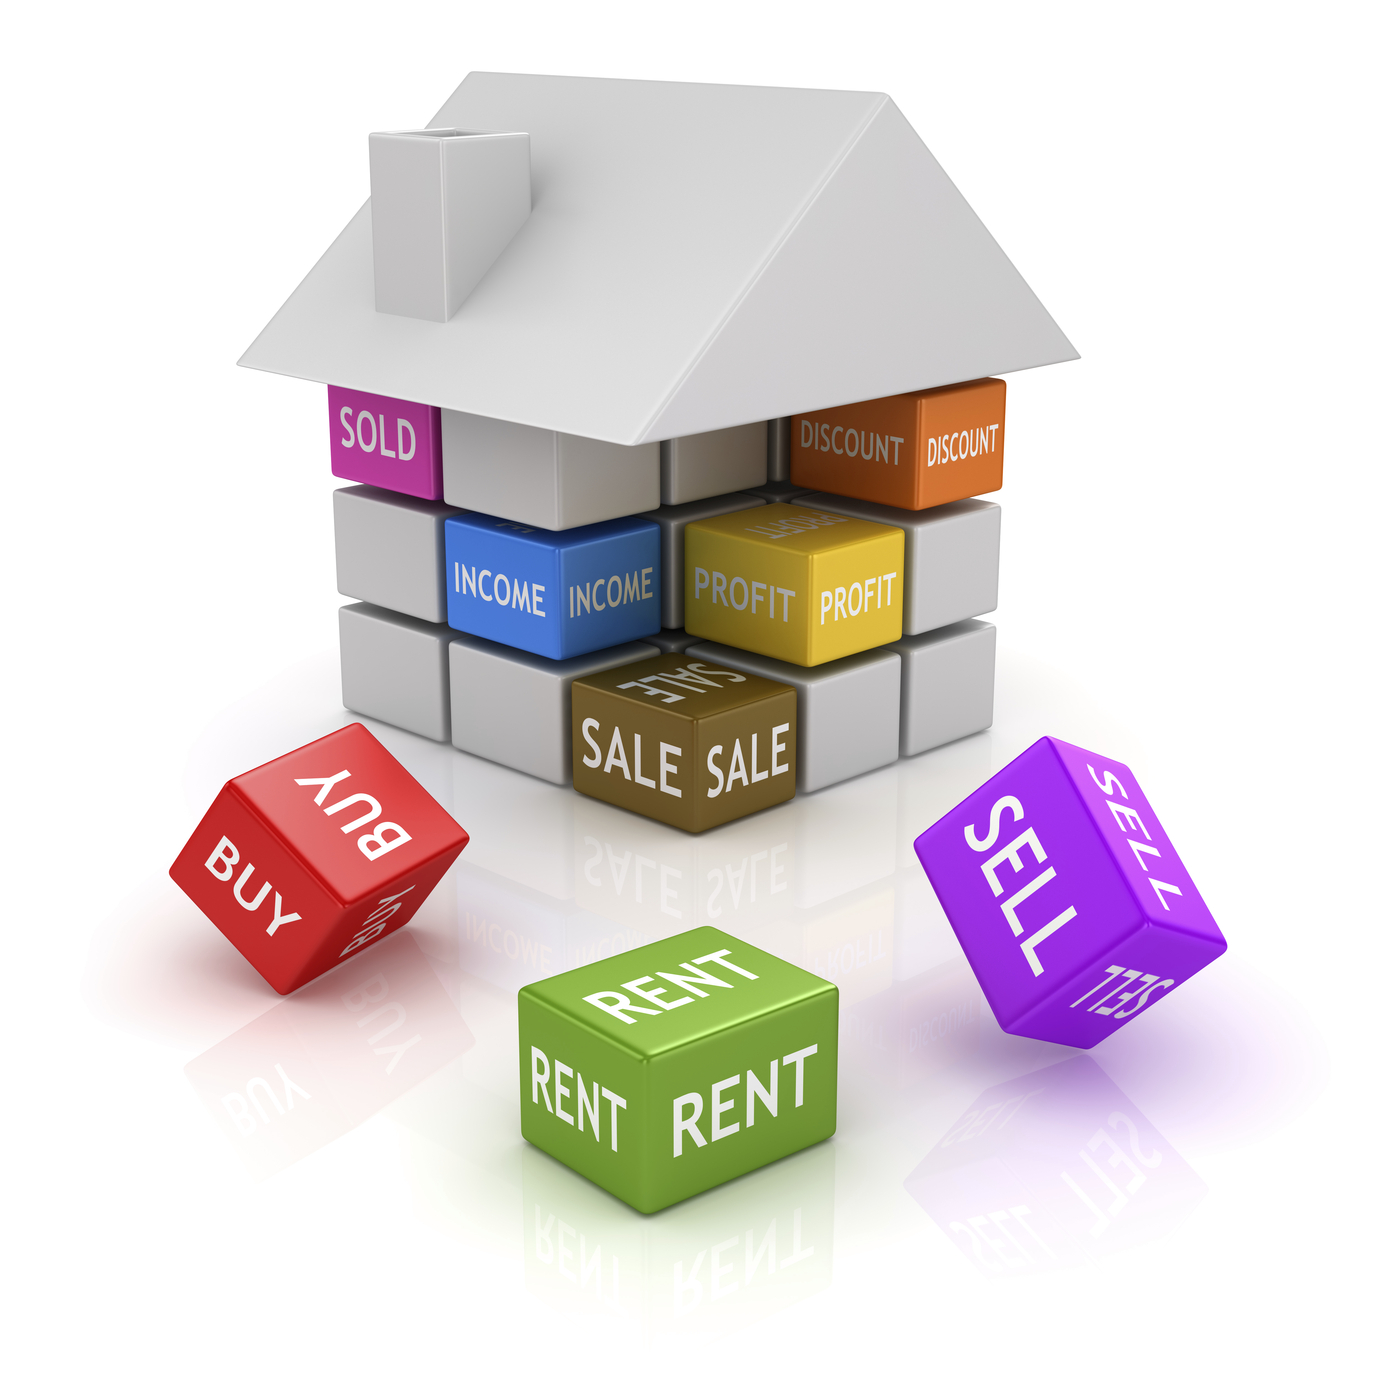 Housing Rentals: What Affordable Housing Means And Why It's Important